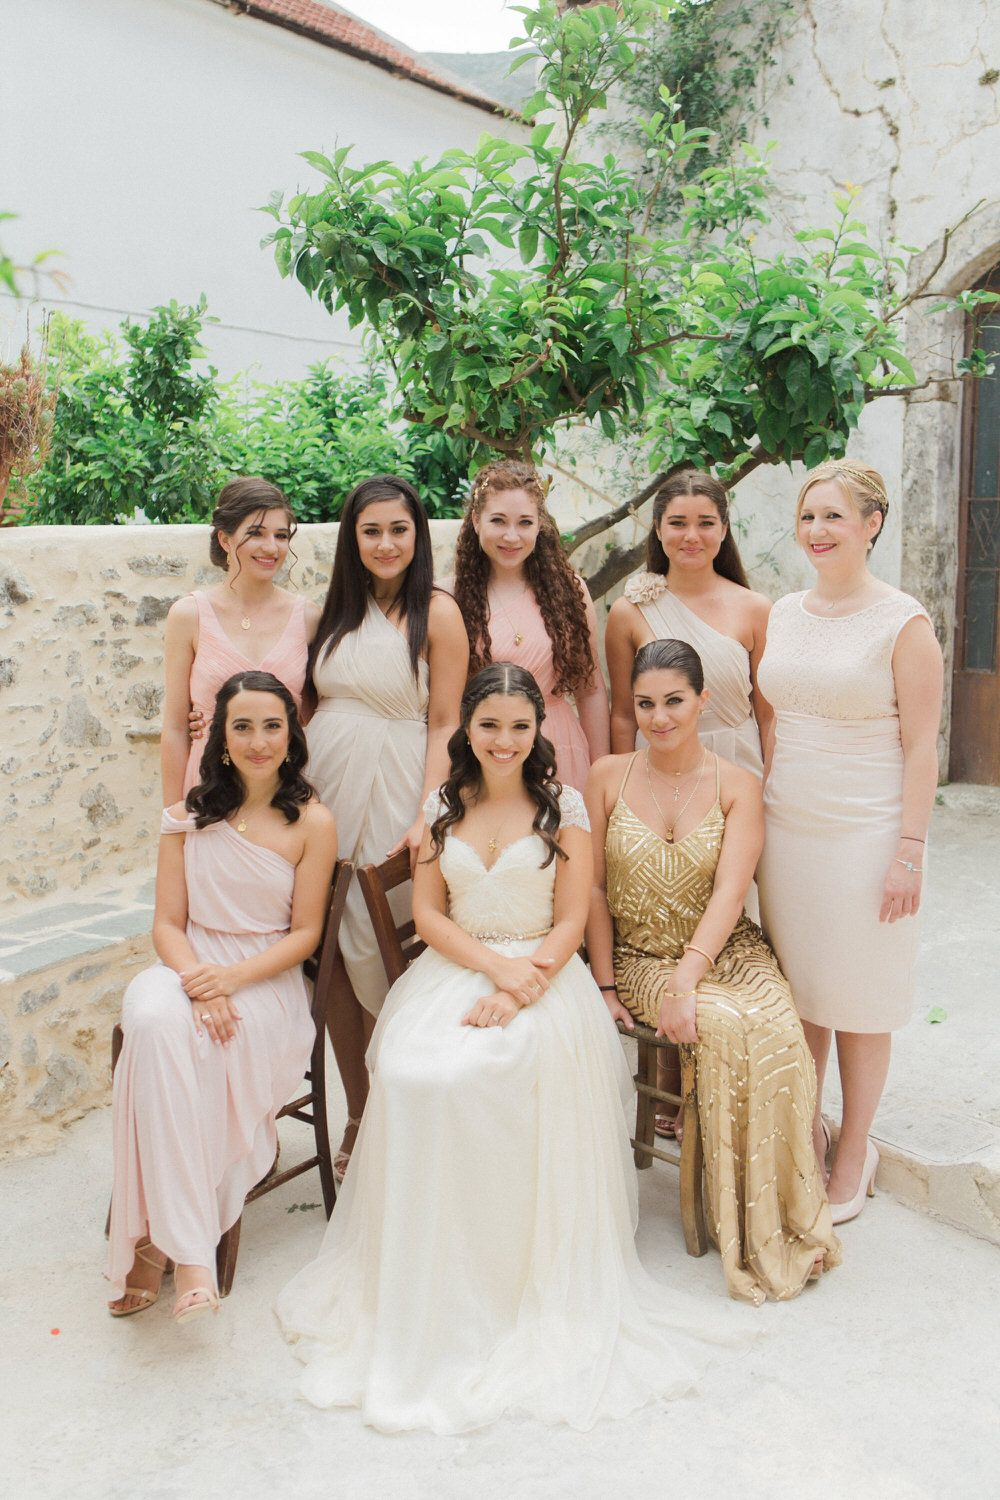 Traditional greek wedding with sarah seven wedding dress nude traditional greek wedding with sarah seven wedding dress nude bridesmaid dresses pastel rose bouquet ombrellifo Image collections